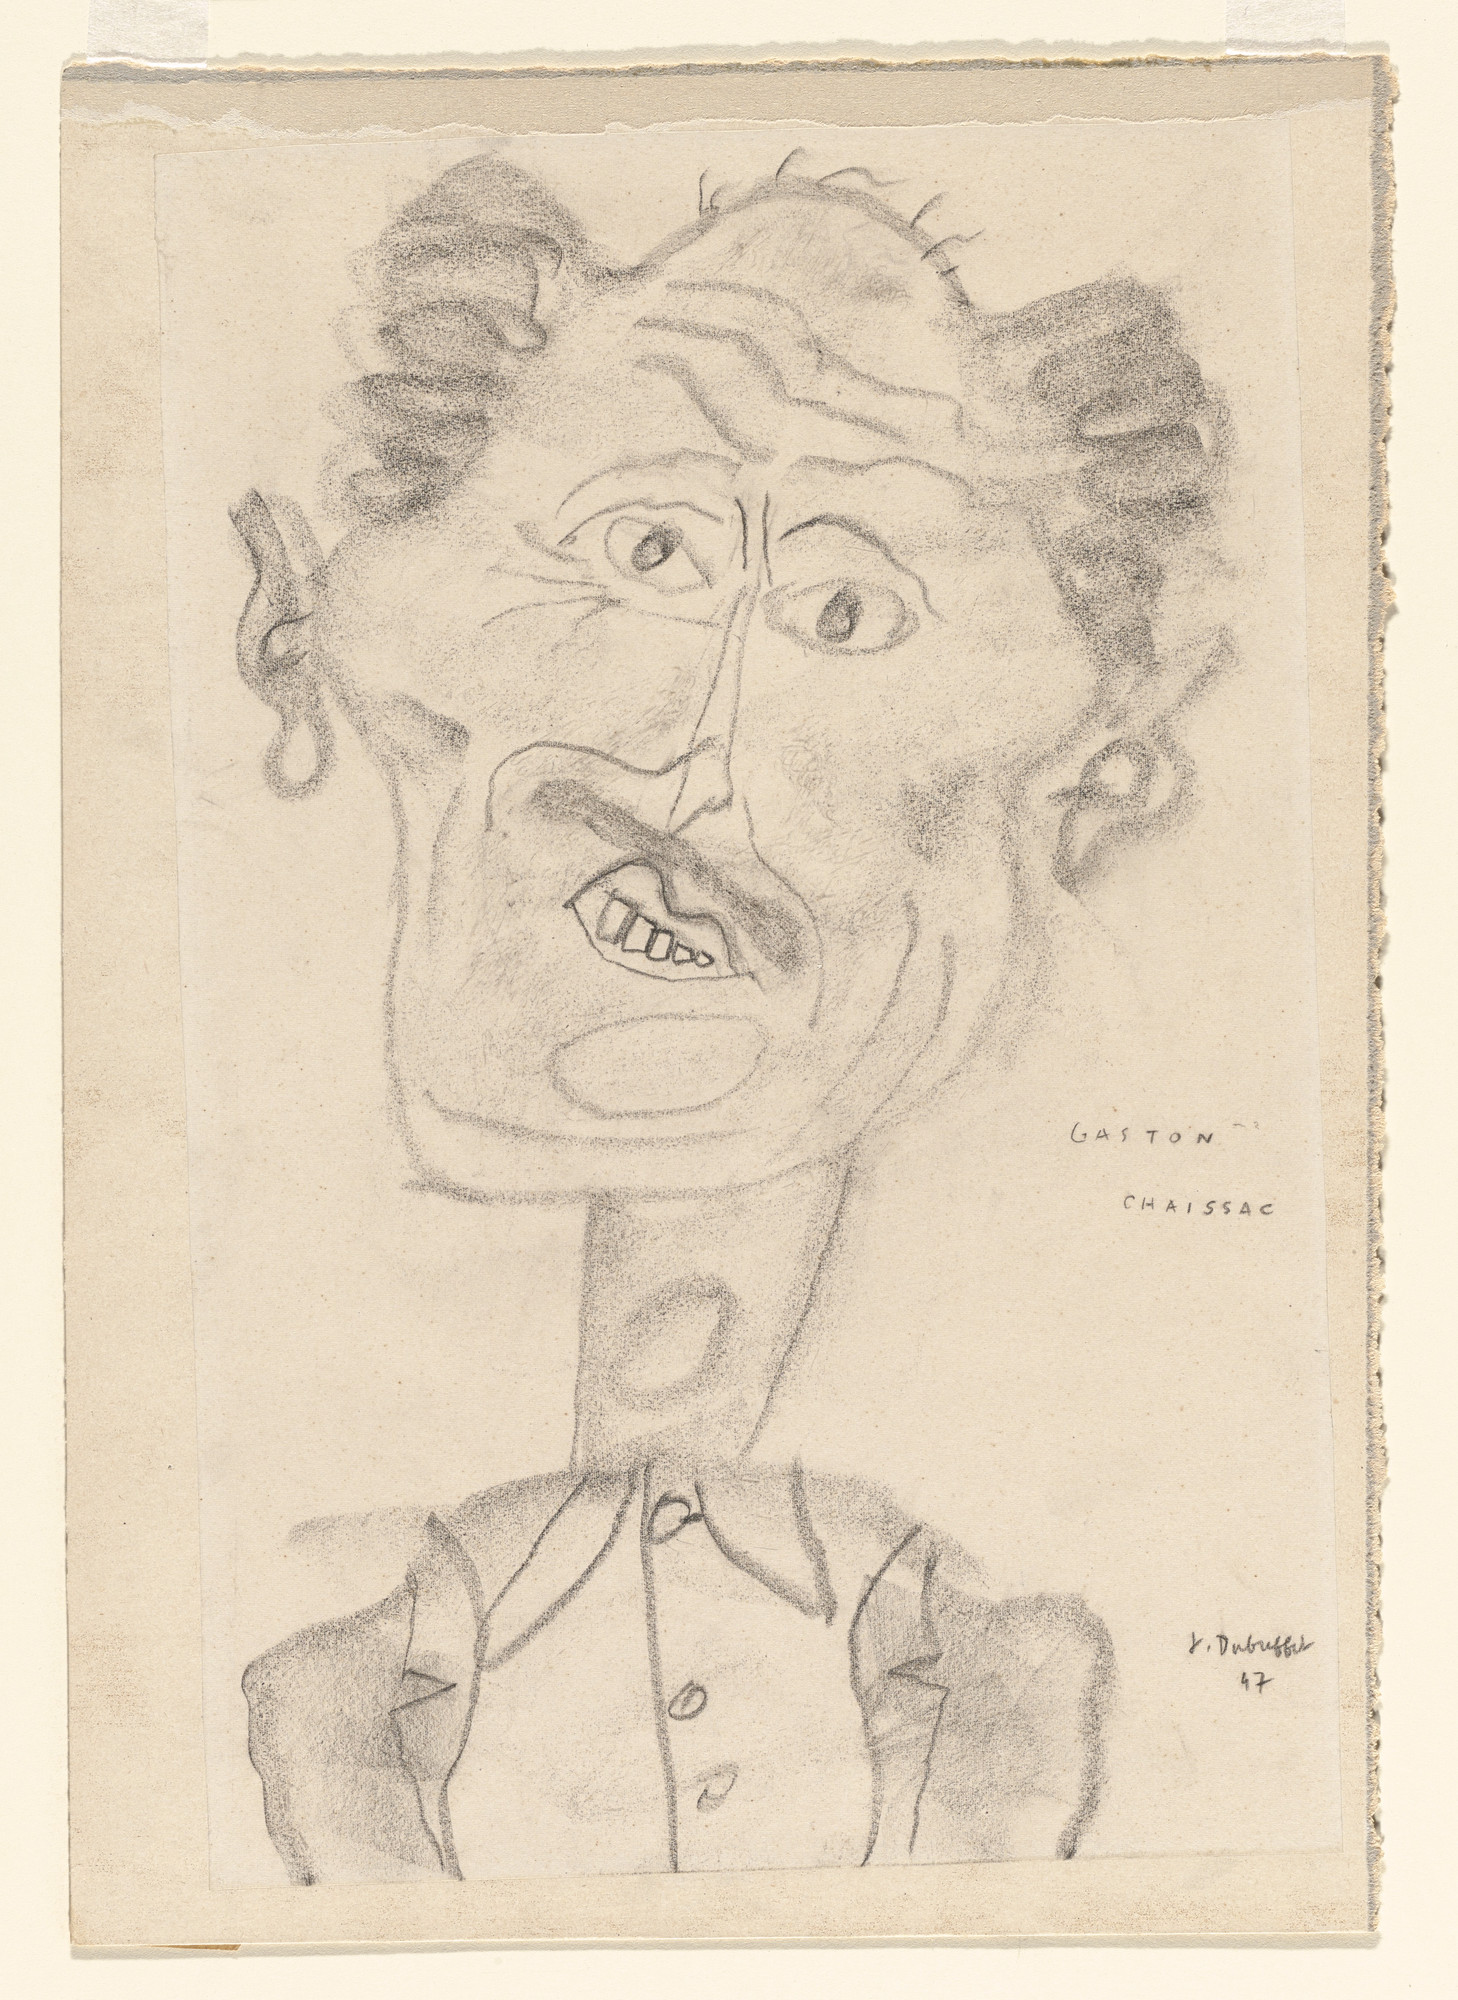 Jean Dubuffet. Gaston Chaissac. 1947